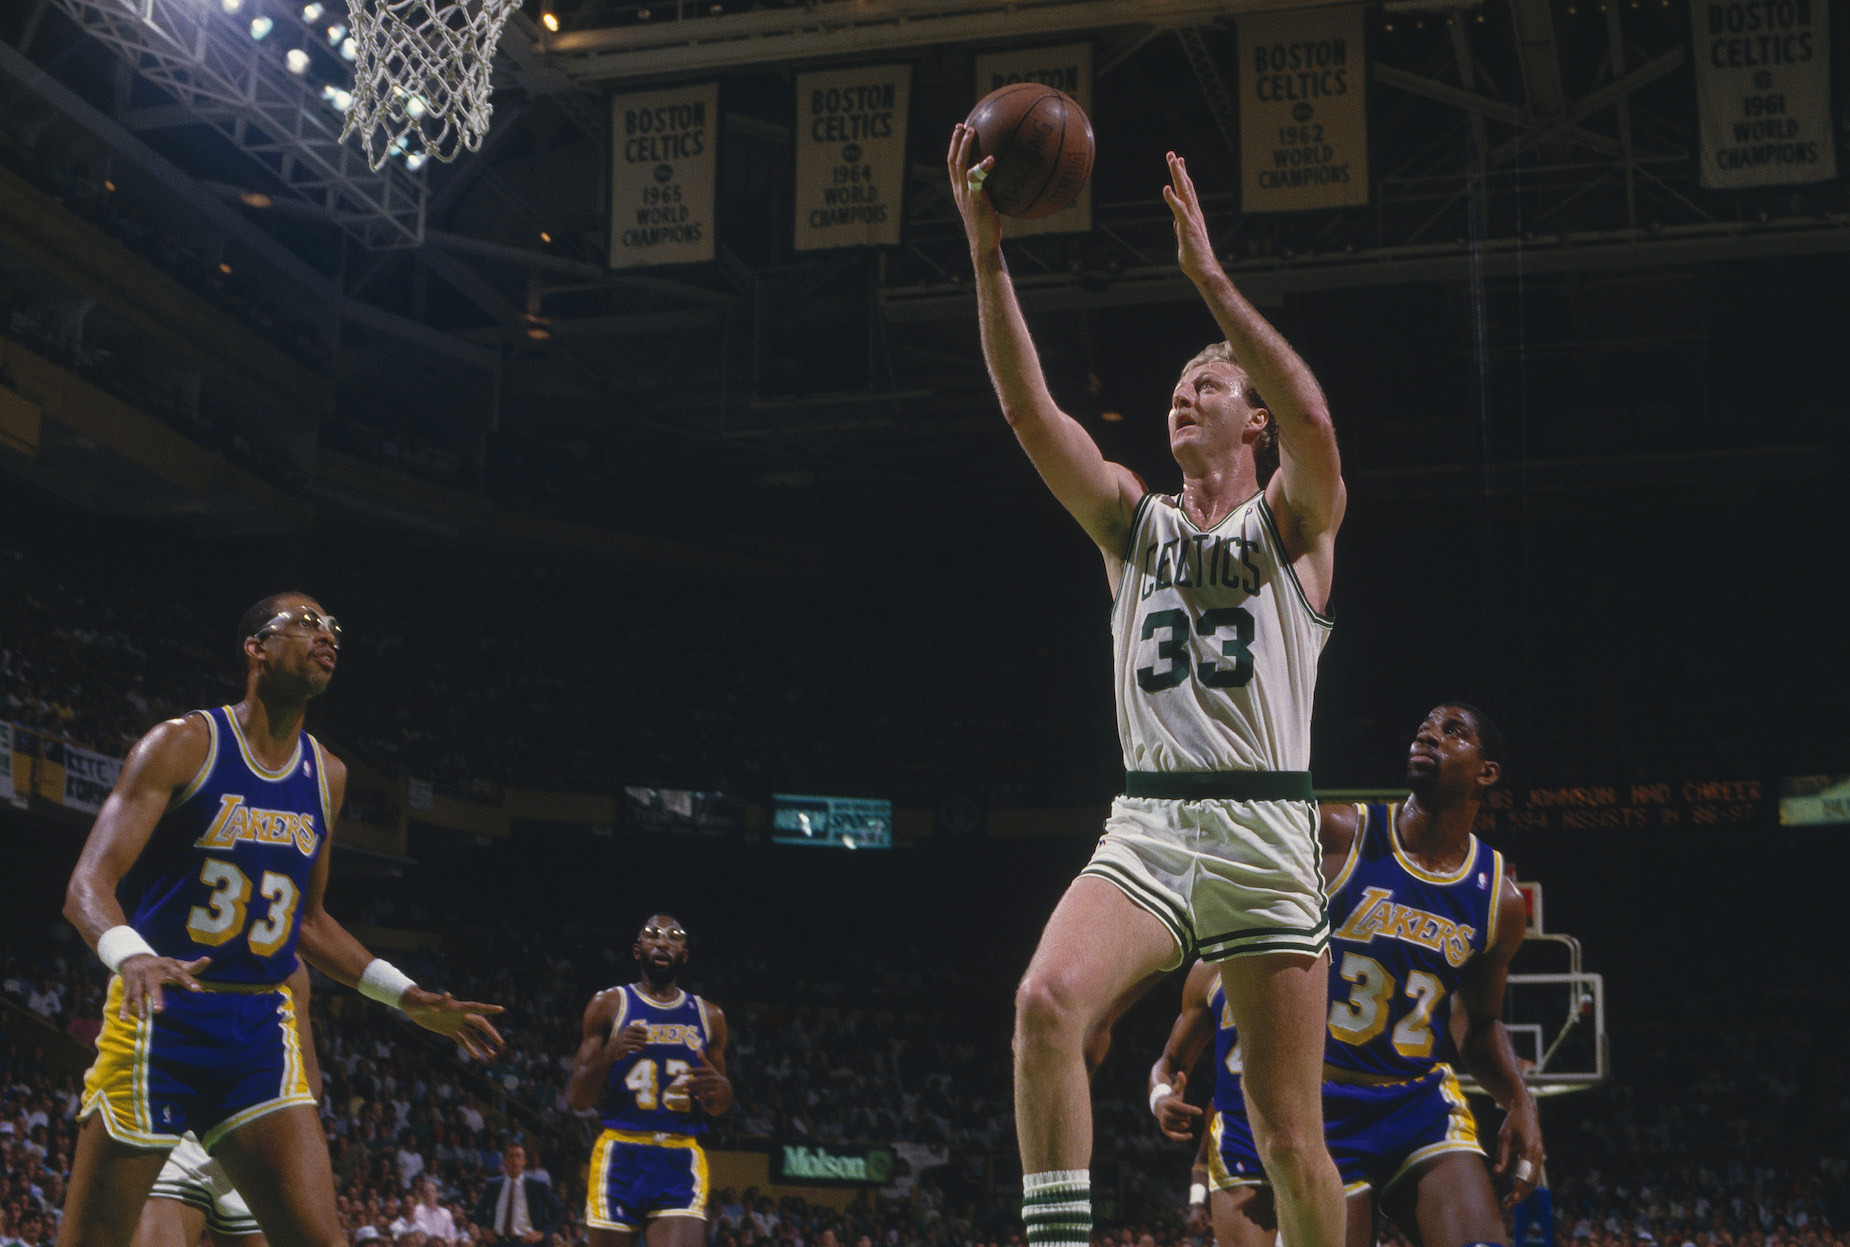 Larry Bird thought it was disrespectful when other teams would have white players defend against him.